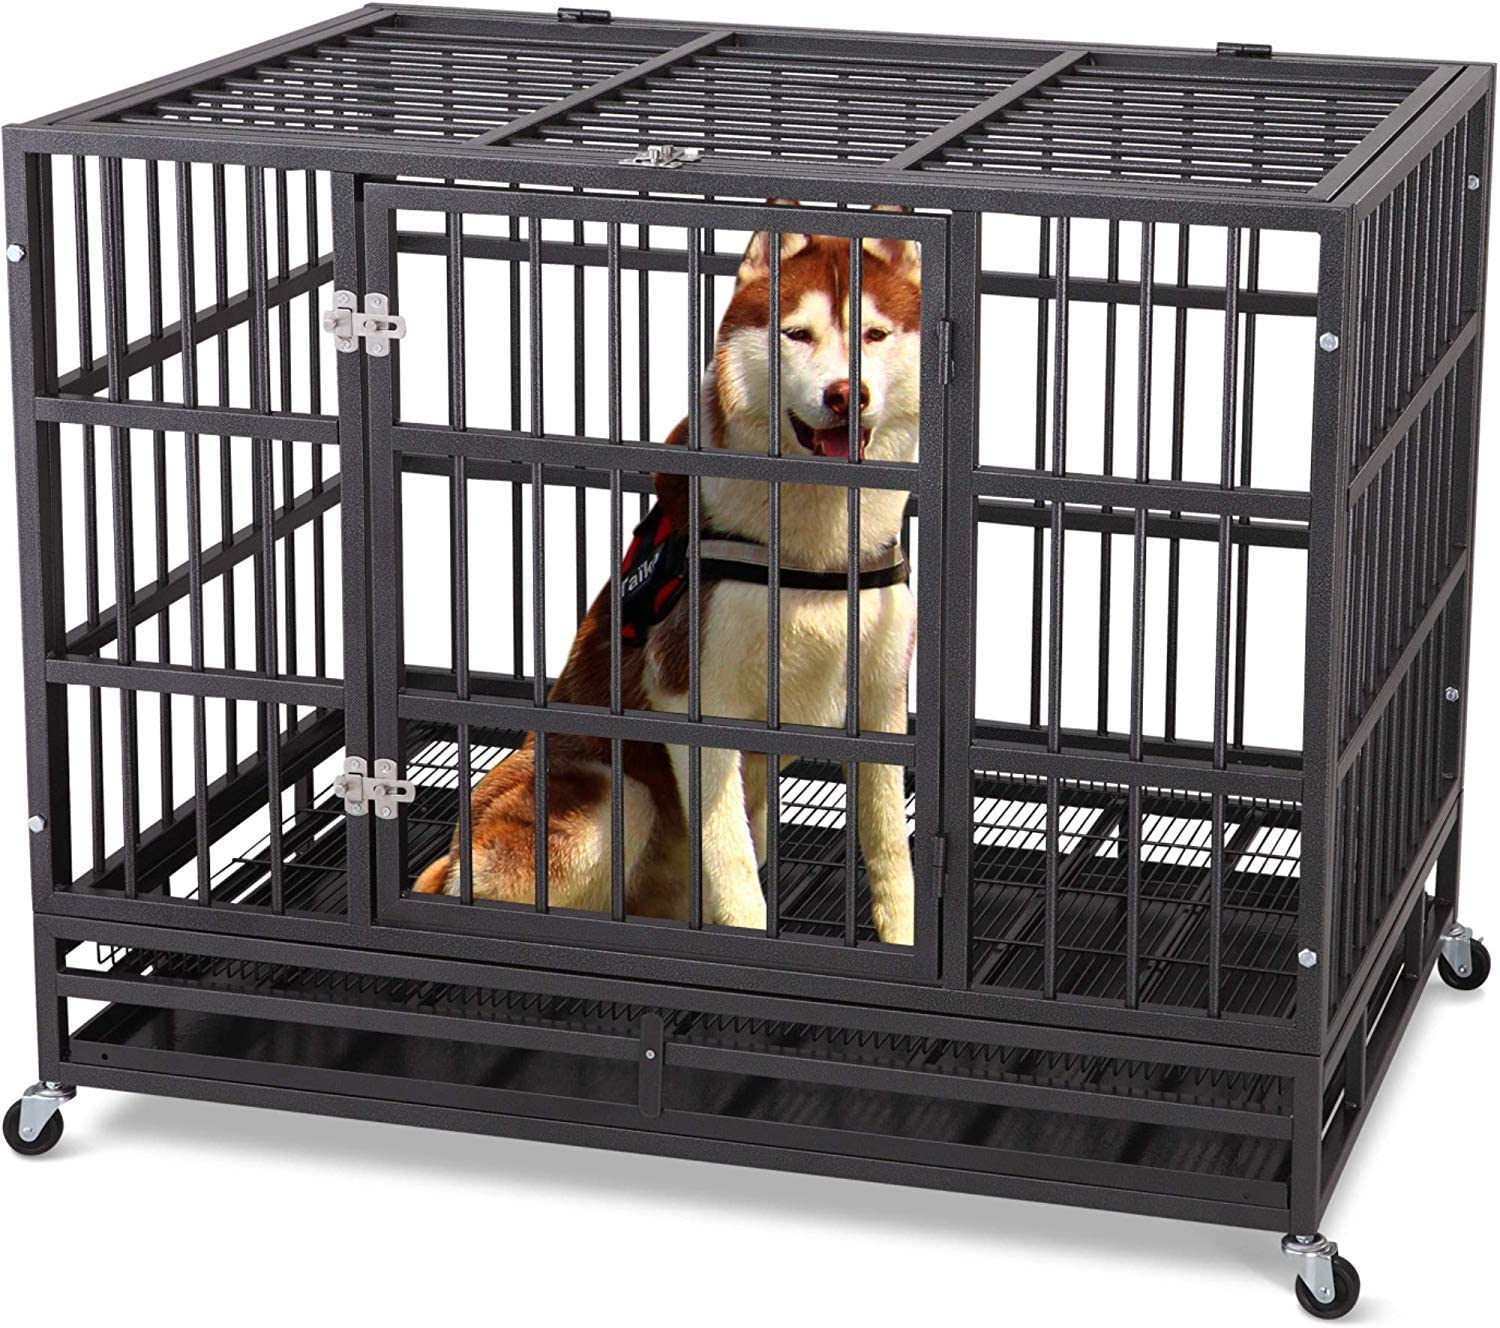 Tray and Rolling Wheels Two Lock ITORI Heavy Duty Dog Cage-Strong Folding Metal Crate Kennel and Playpen for Medium and Large Dogs with Double Door 36 42 48